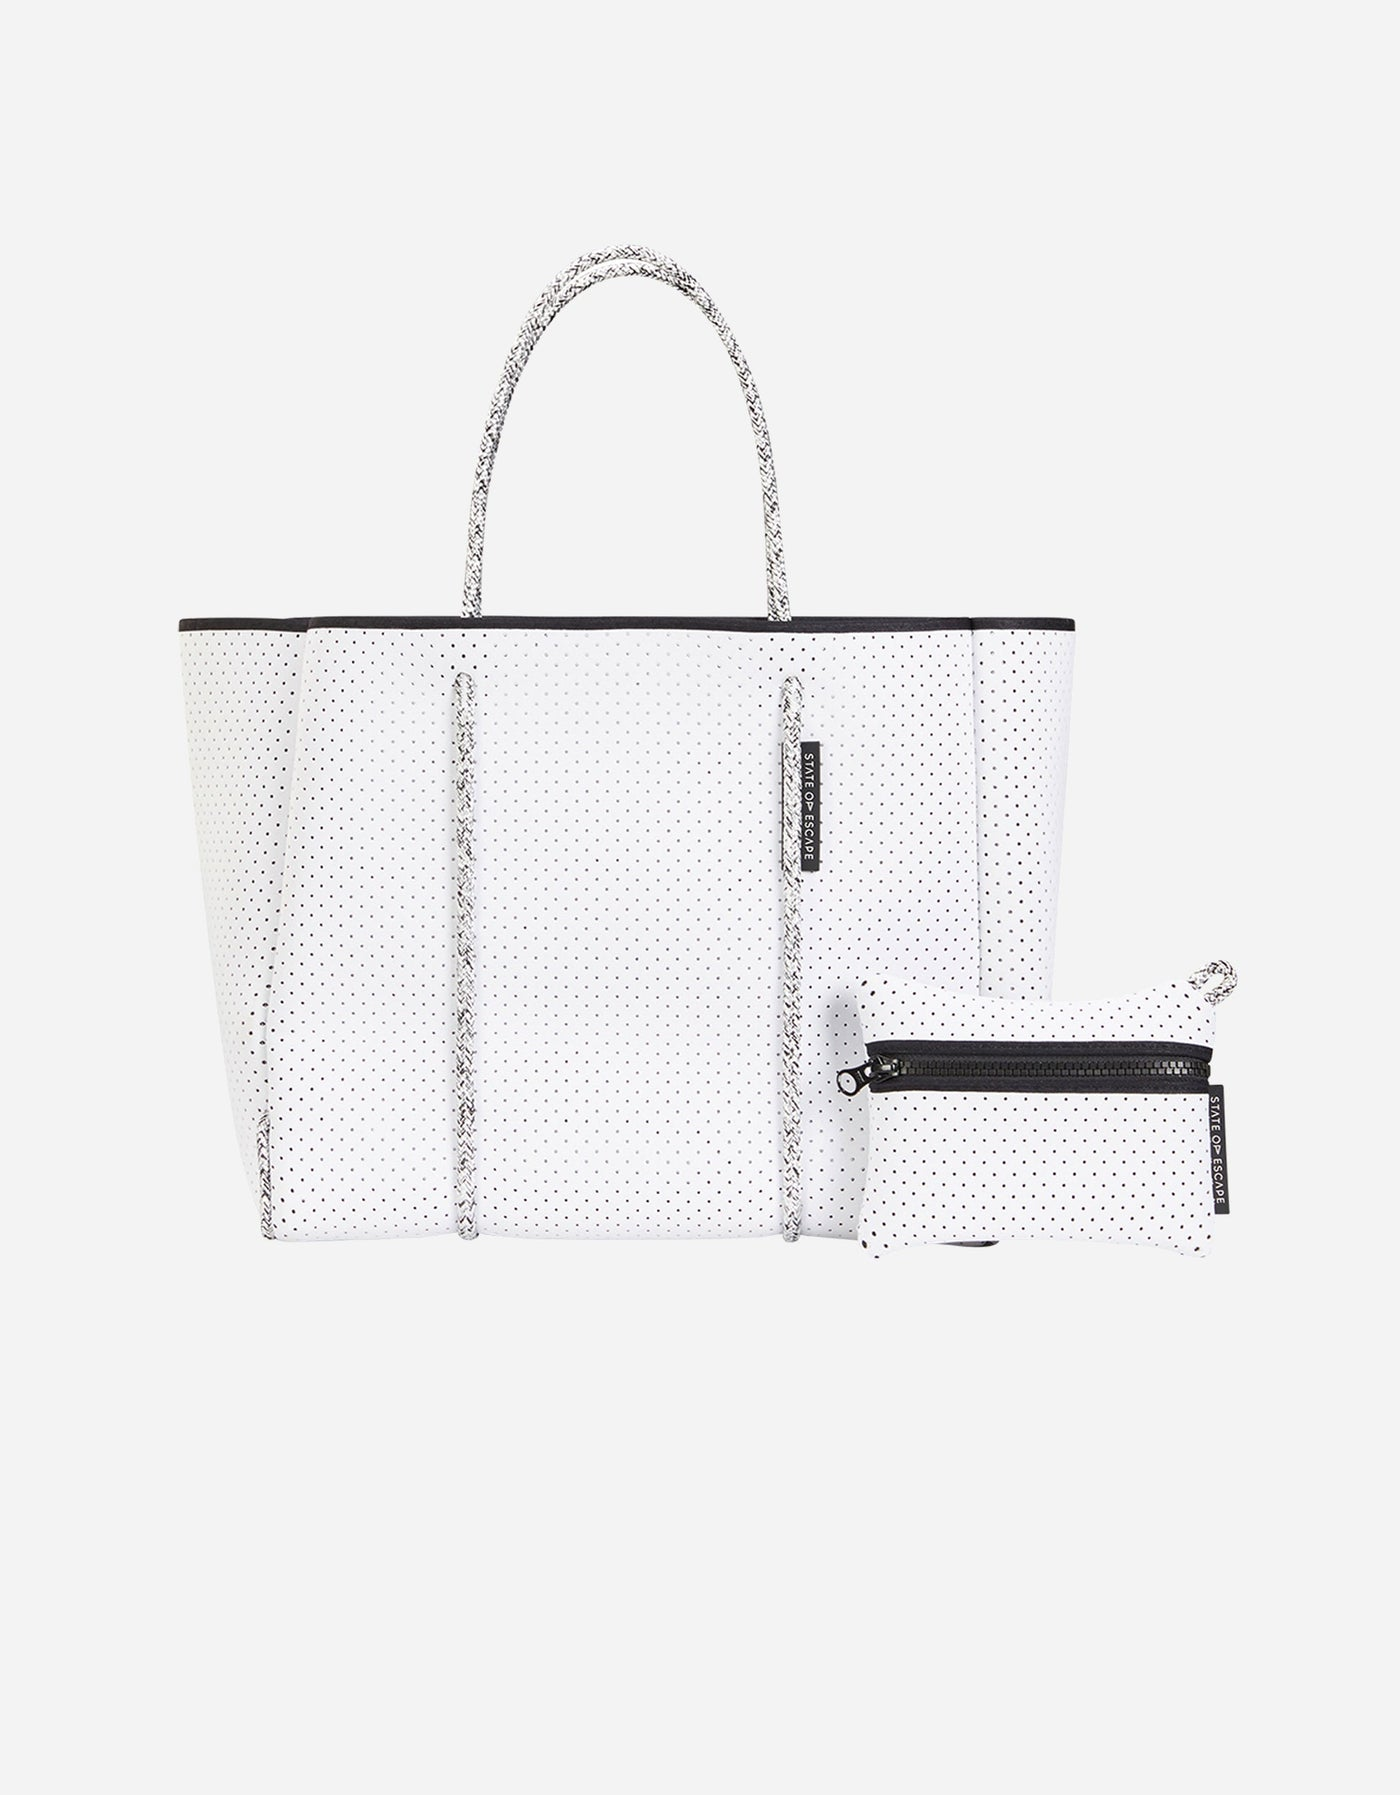 Flying solo tote in white with blended rope